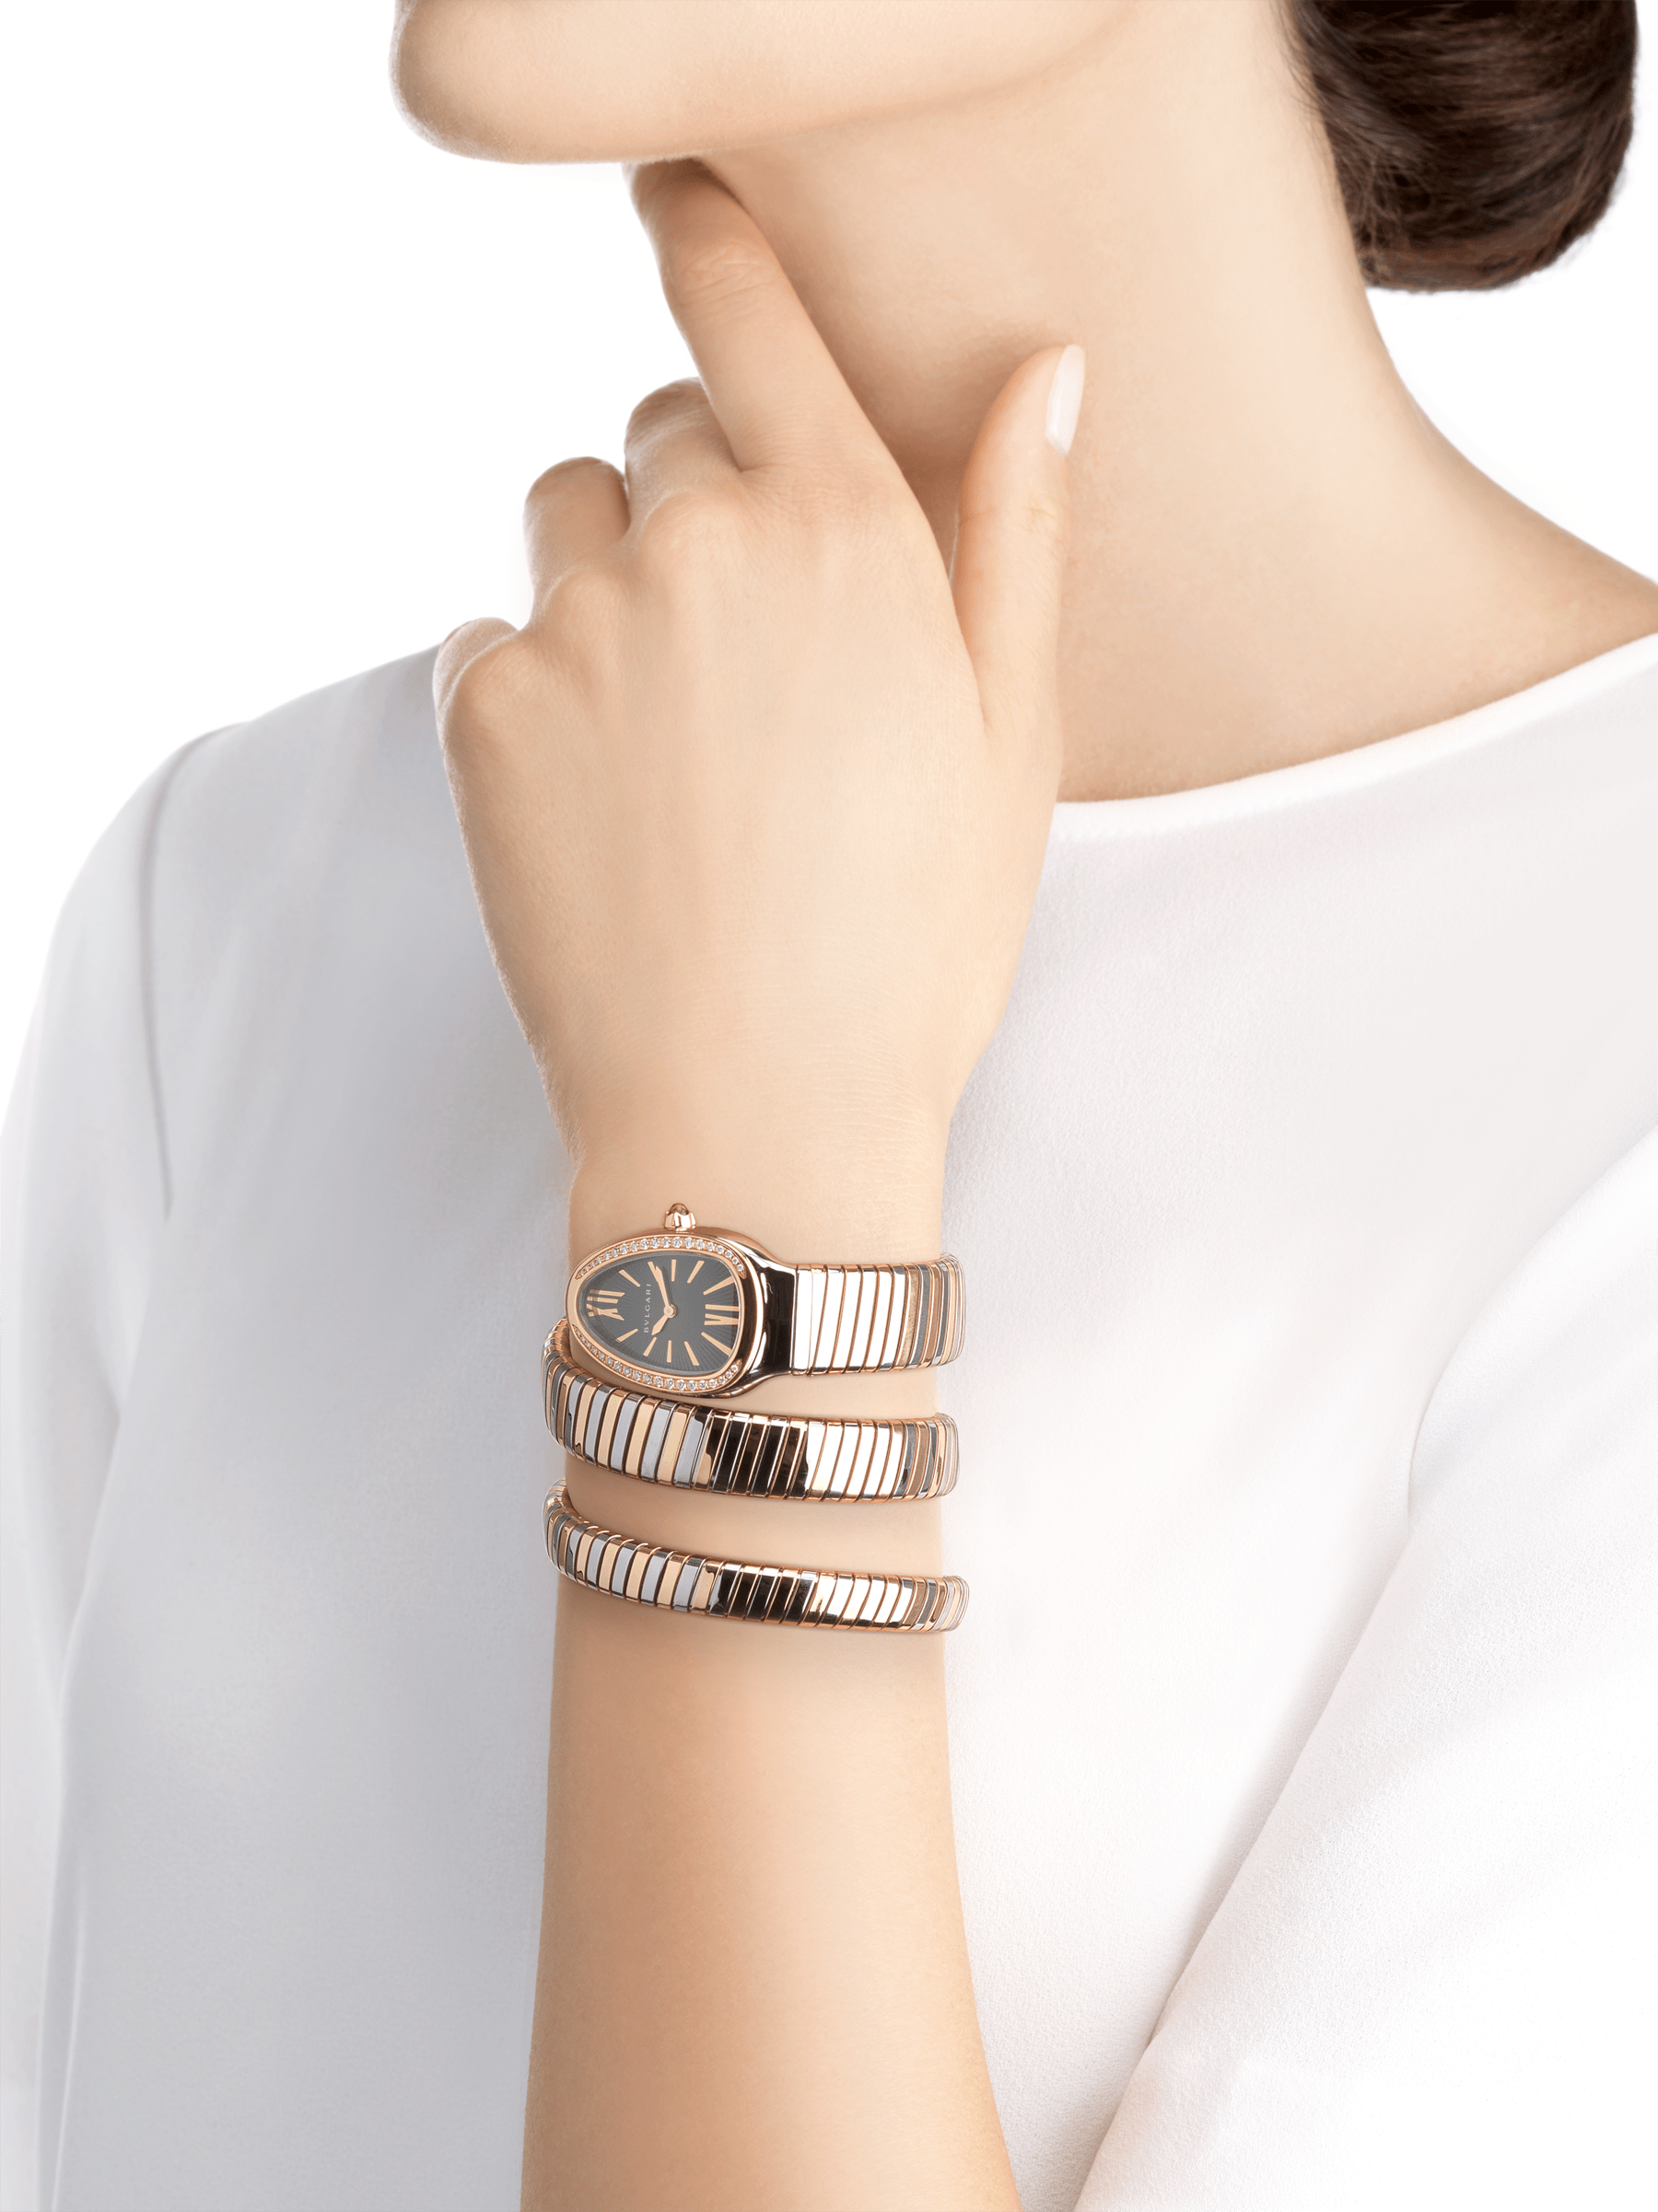 Serpenti Tubogas double spiral watch with stainless steel case, 18 kt rose gold bezel set with brilliant cut diamonds, grey lacquered dial, 18 kt rose gold and stainless steel bracelet. 102680 image 4